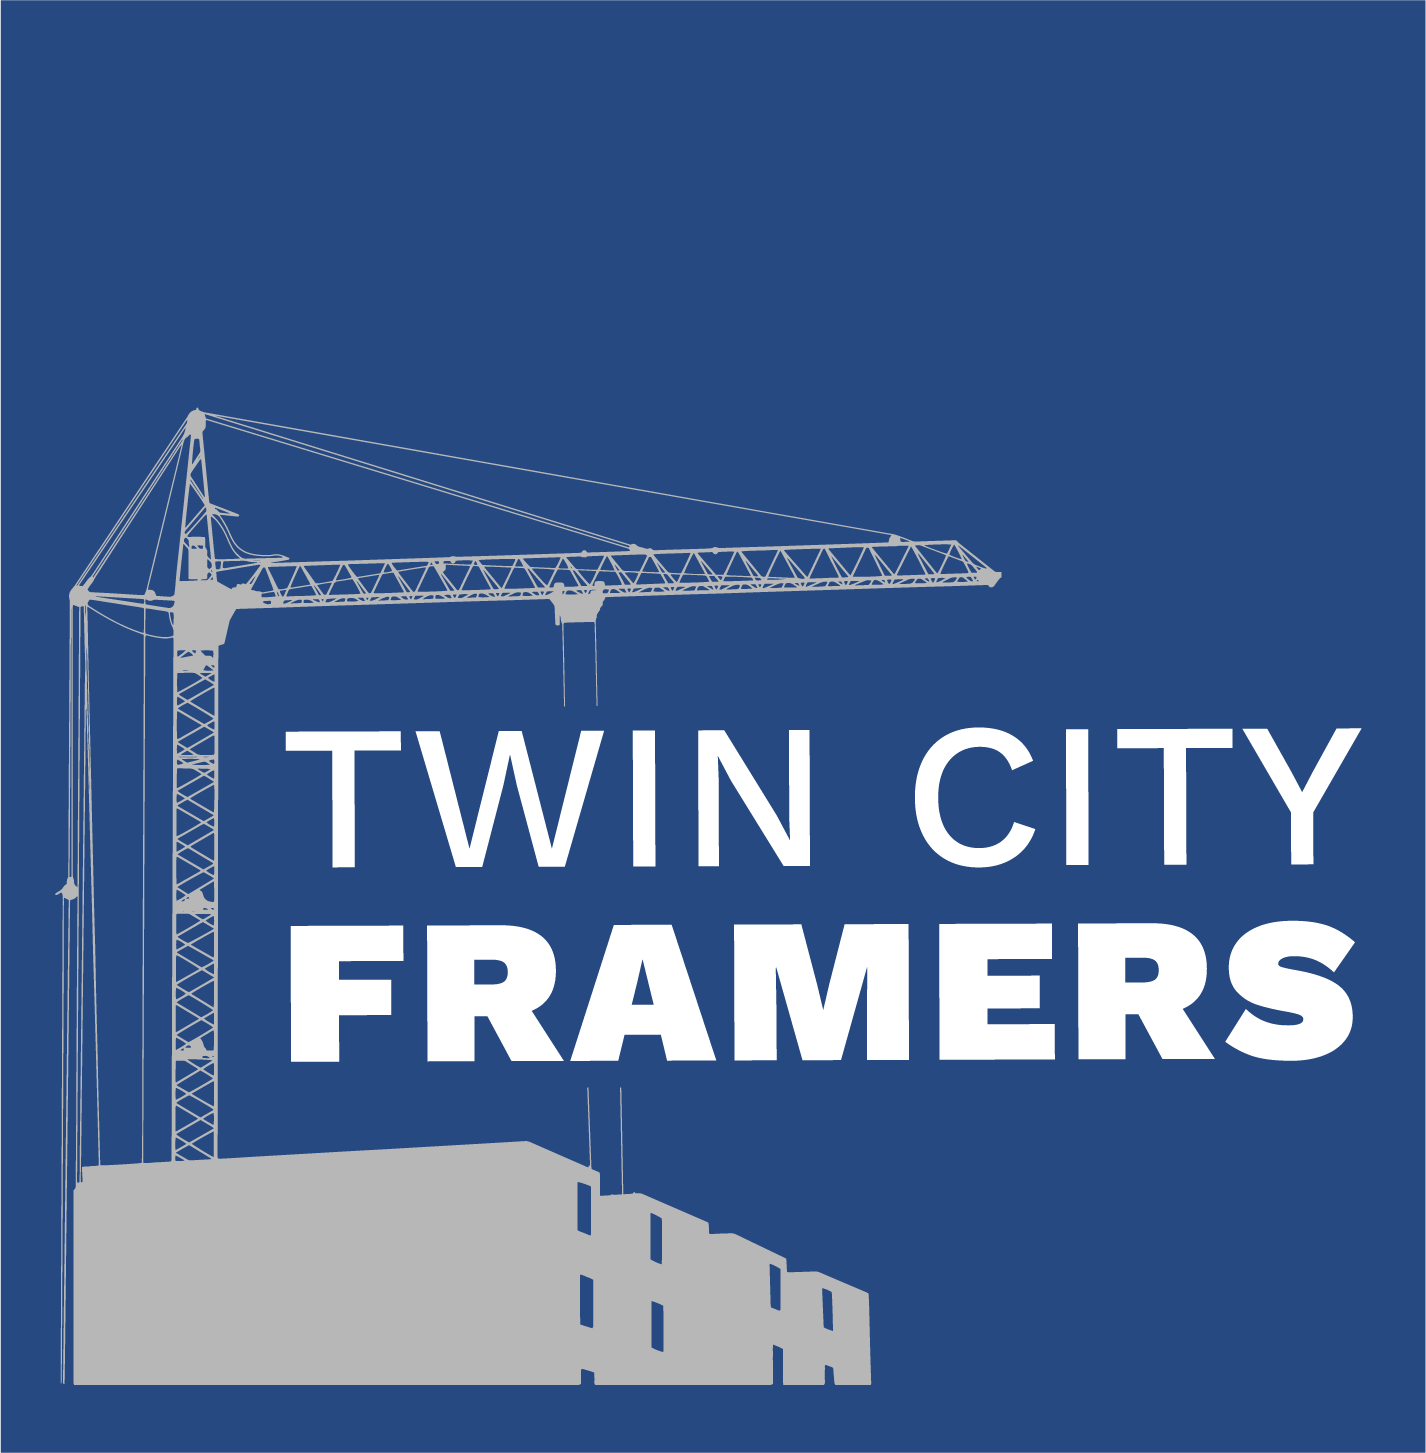 Twin City Framers logo